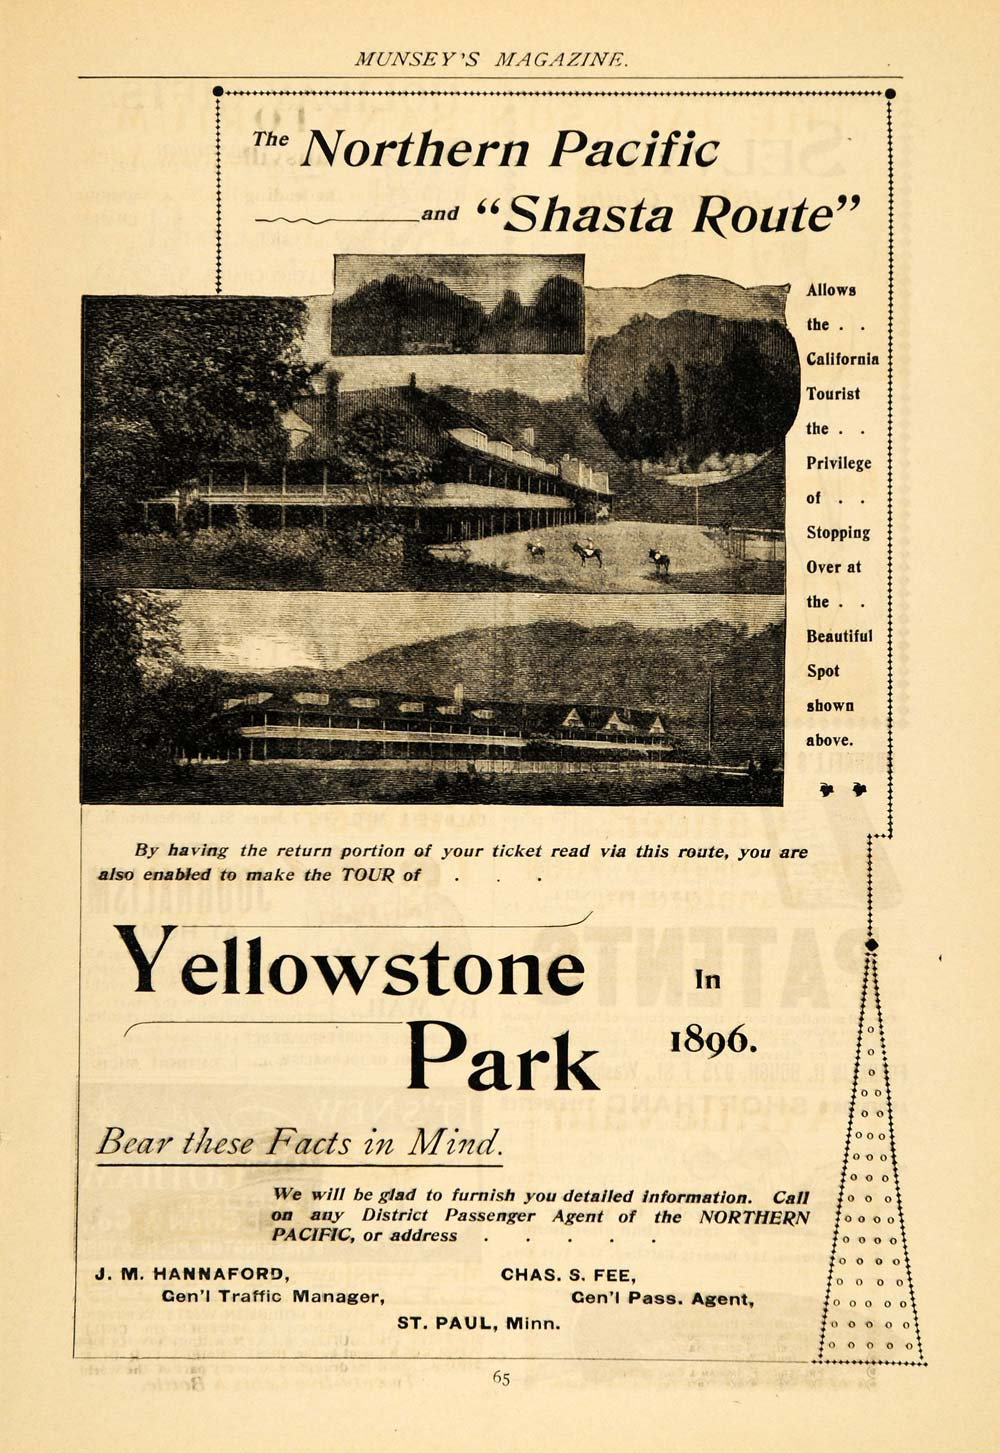 1895 Ad Northern Pacific Shasta Route Yellowstone Park - ORIGINAL MUN1